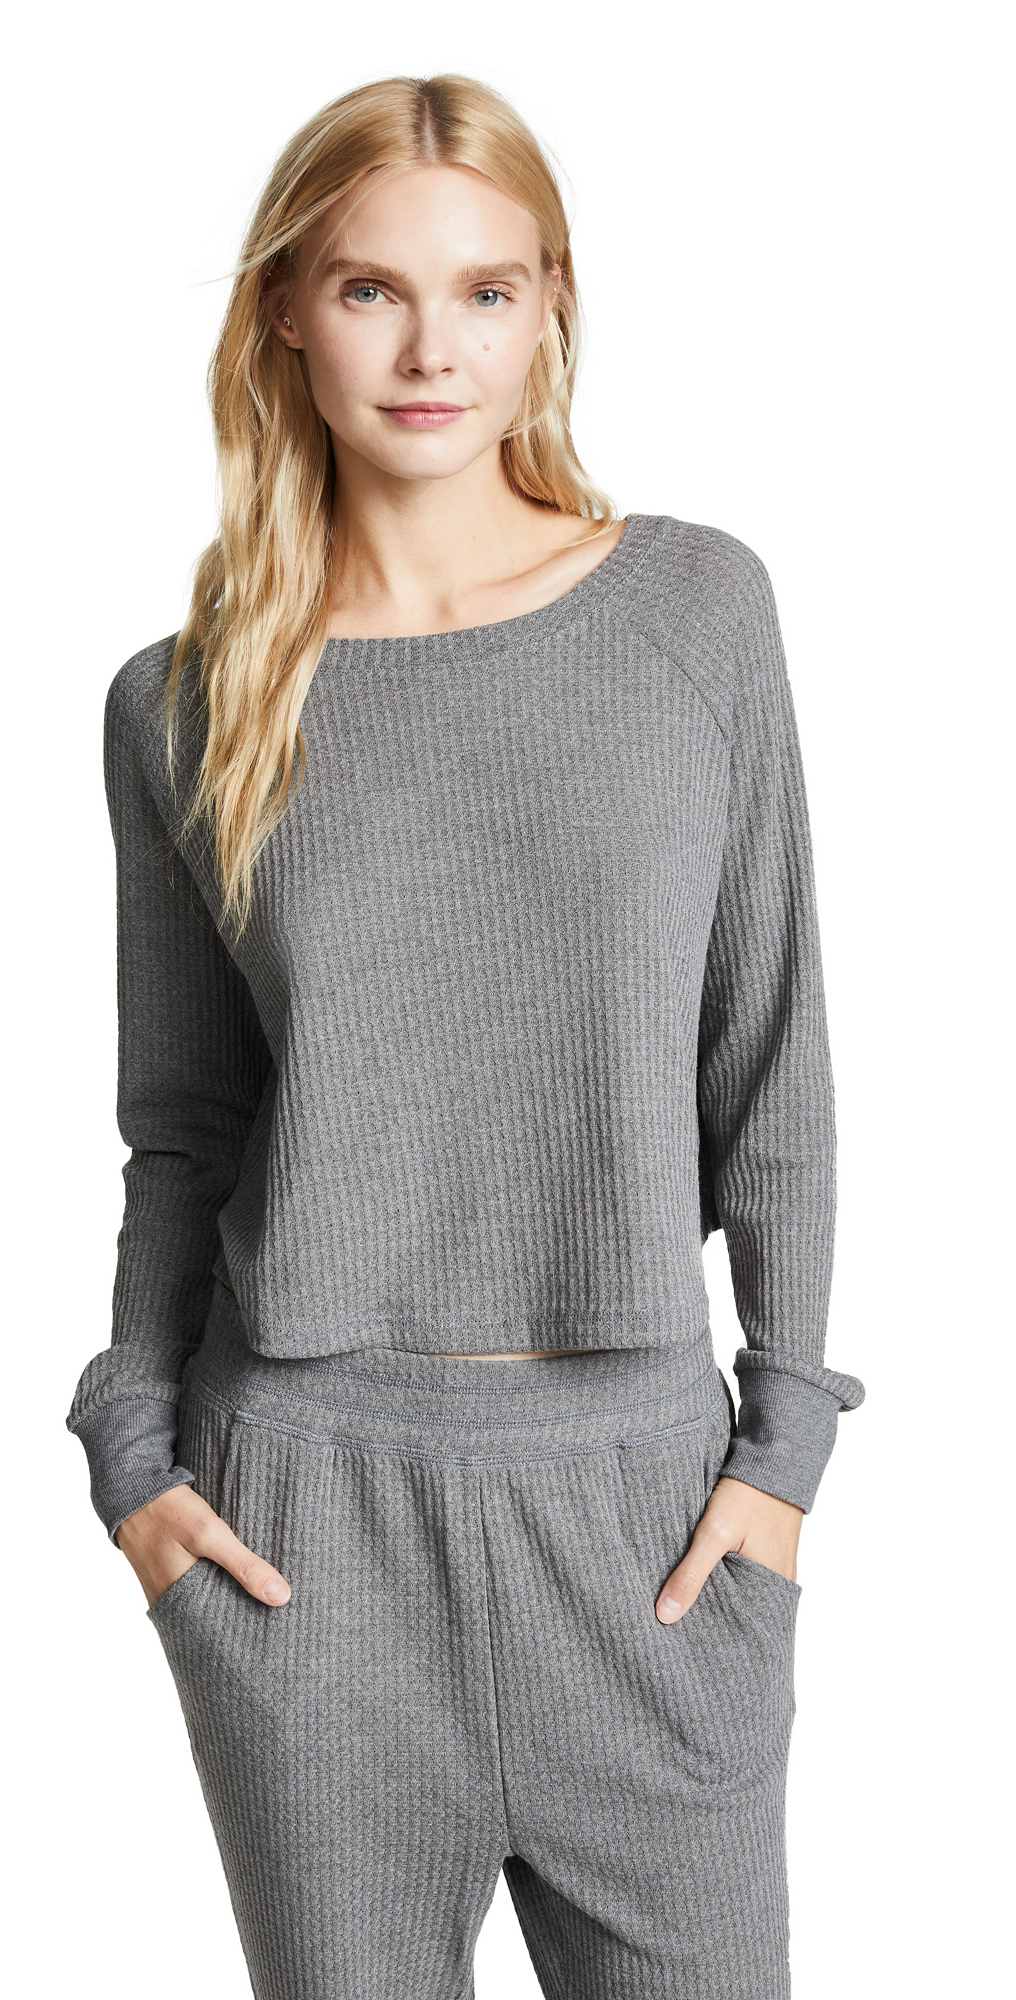 Honeydew Intimates Sneak Peek Waffle Knit Crop Sweatshirt